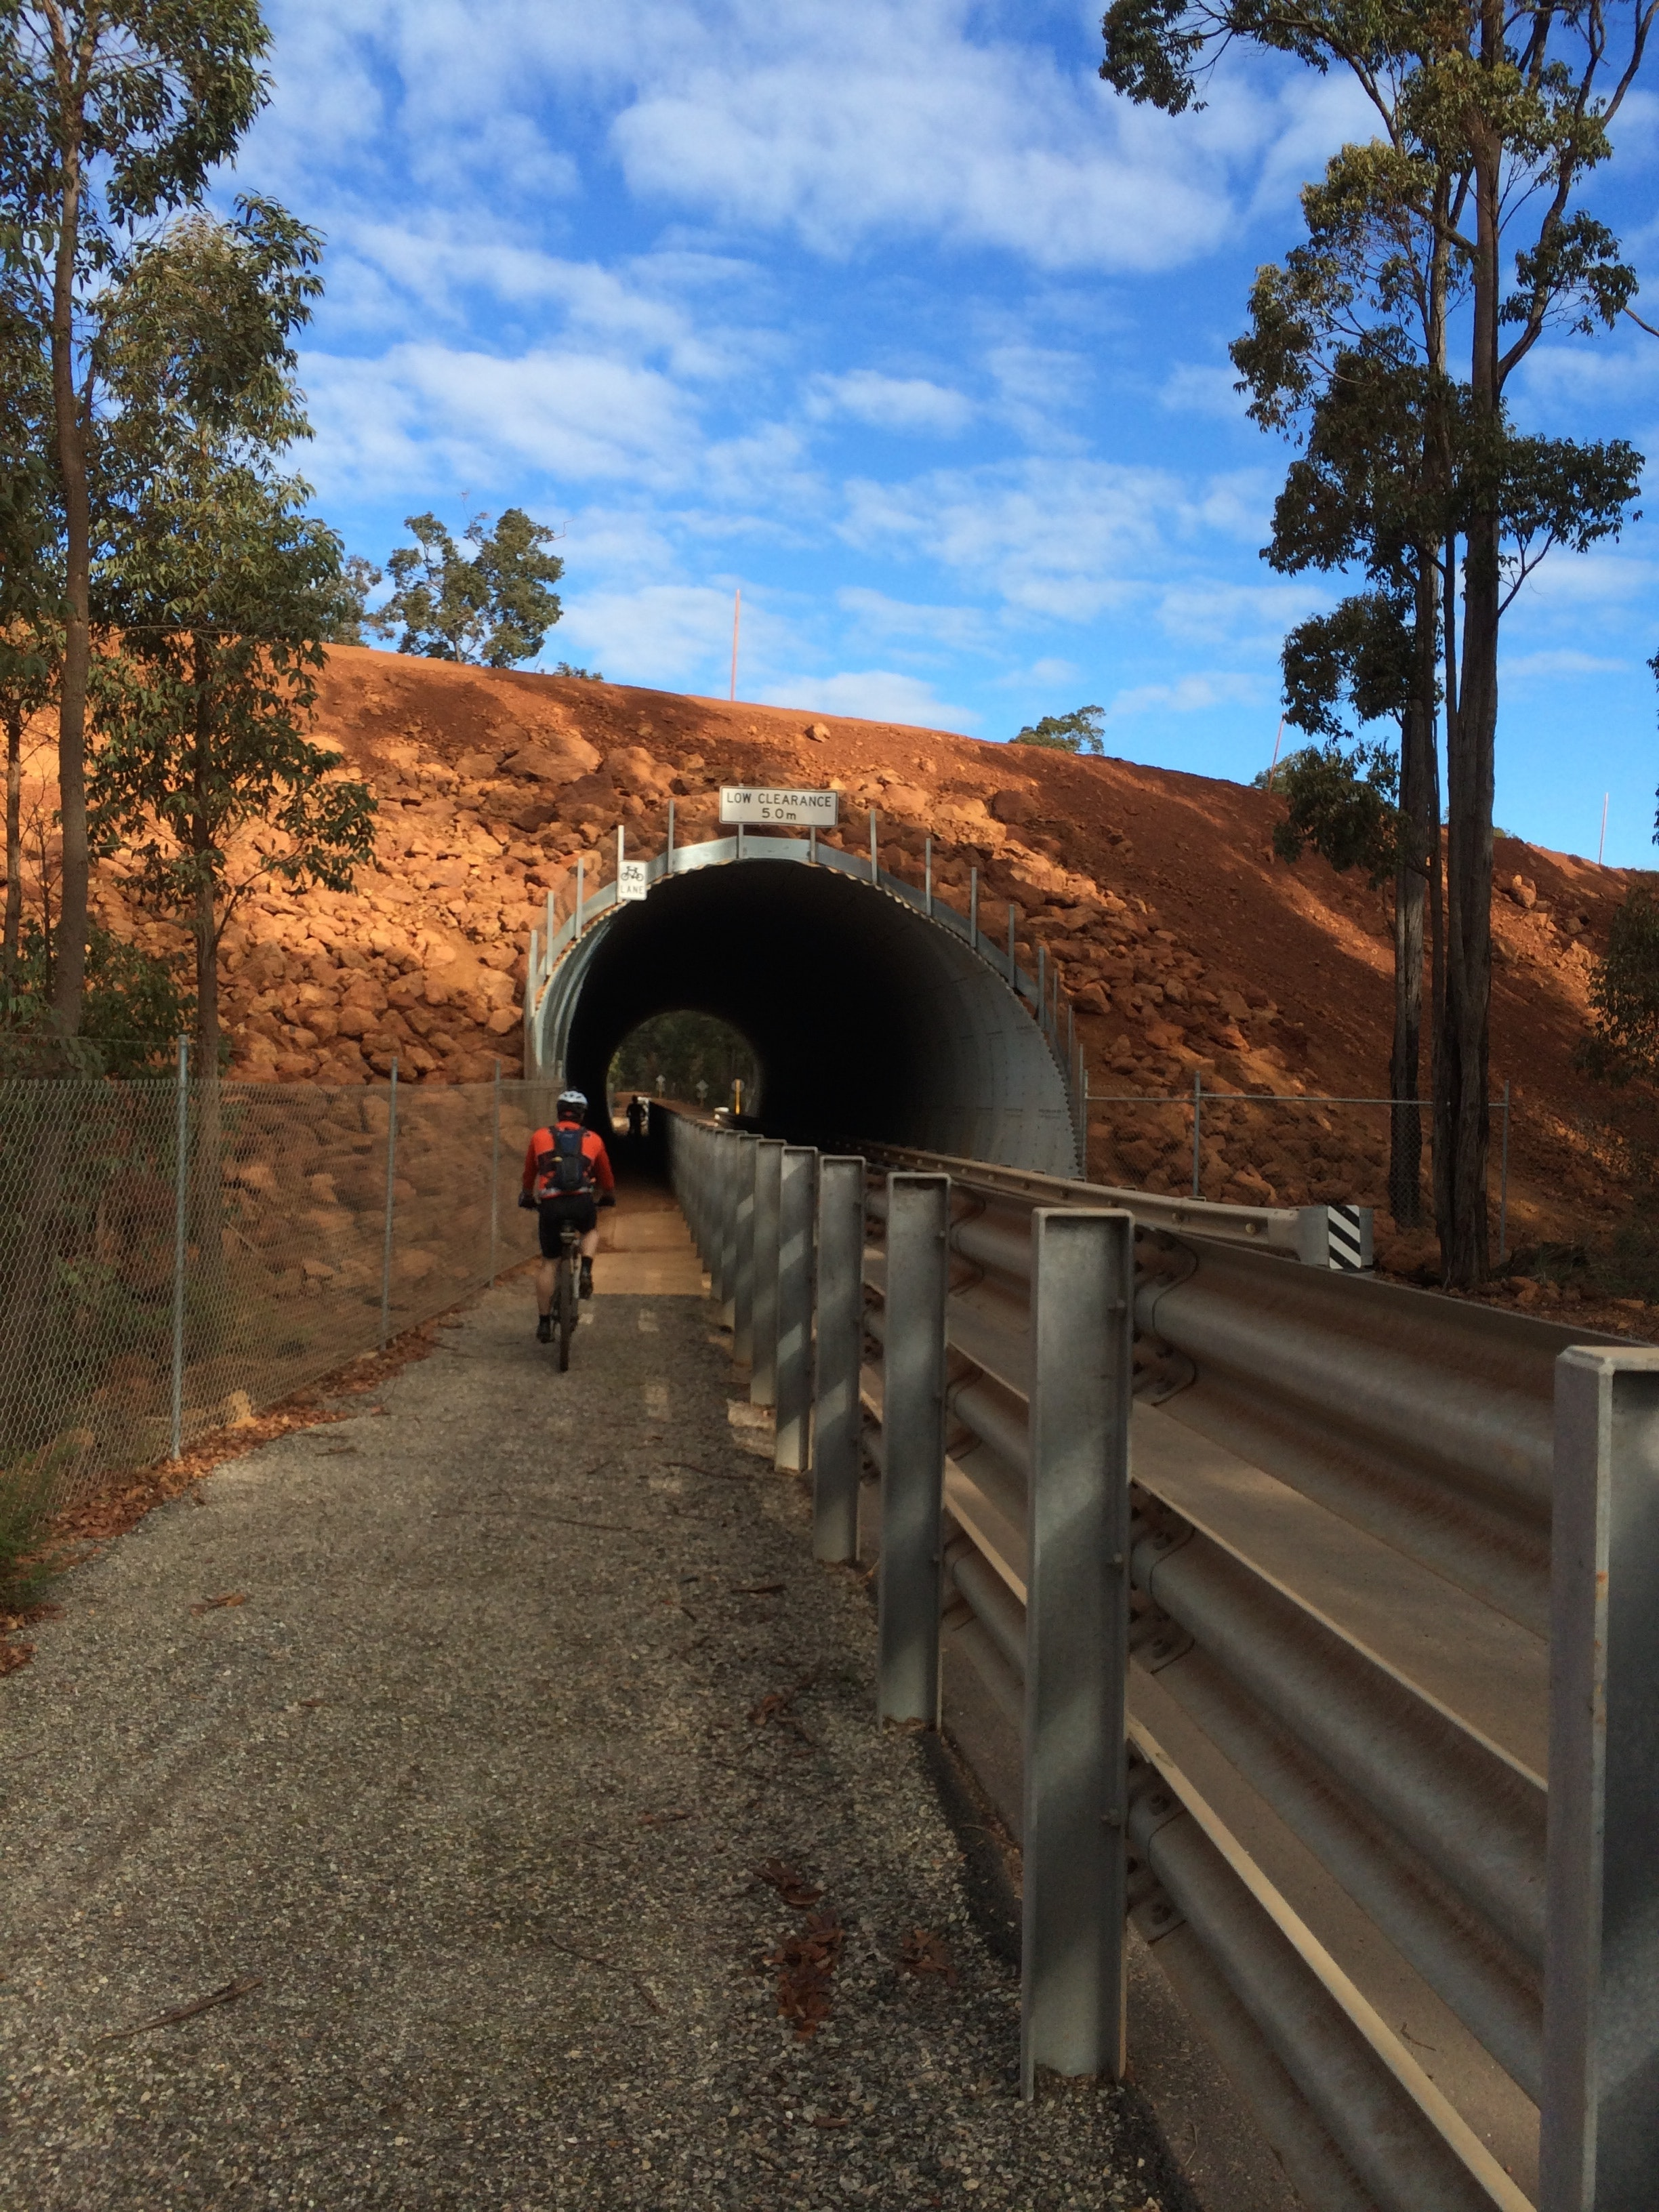 Cycle tunnel under haul road